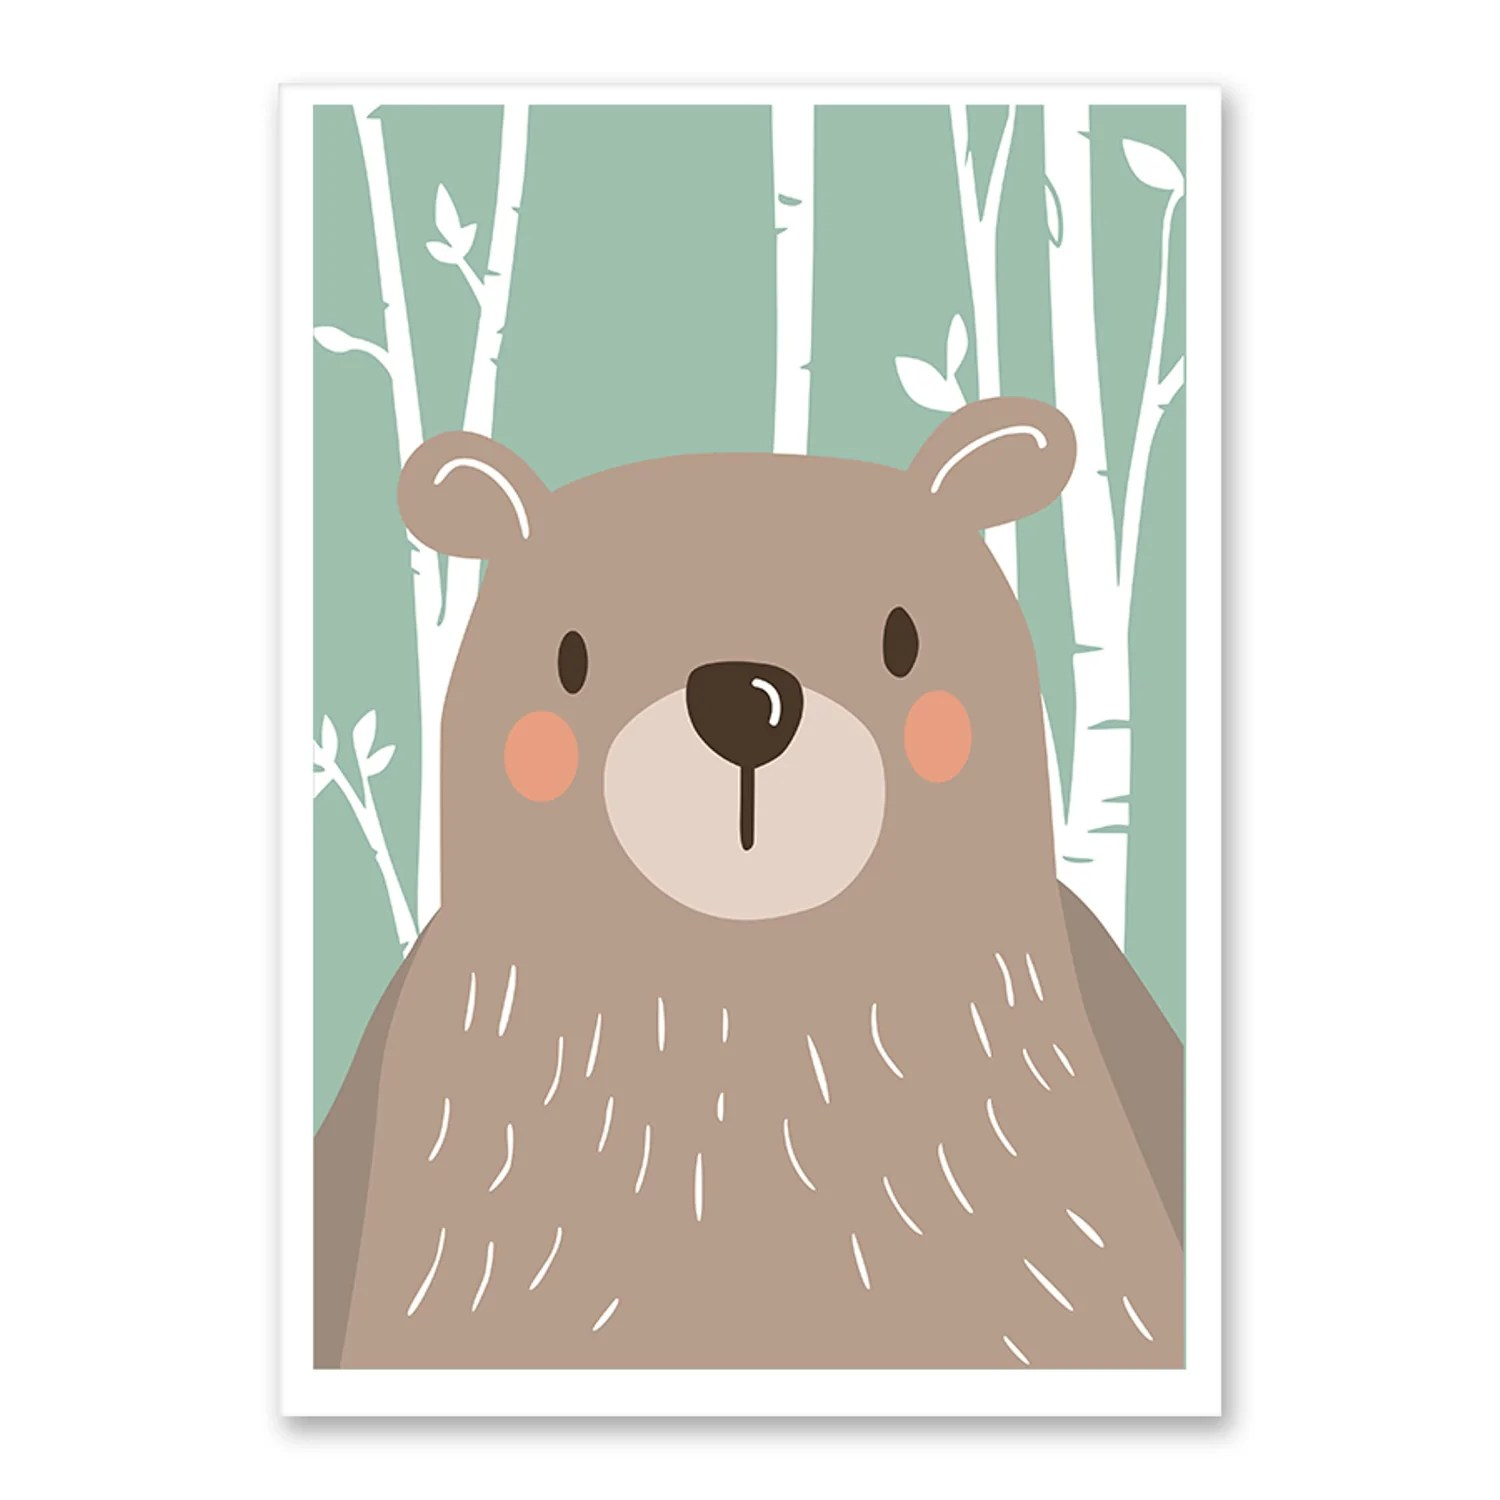 Affiches Scandinaves Affiche Animaux Scandinaves